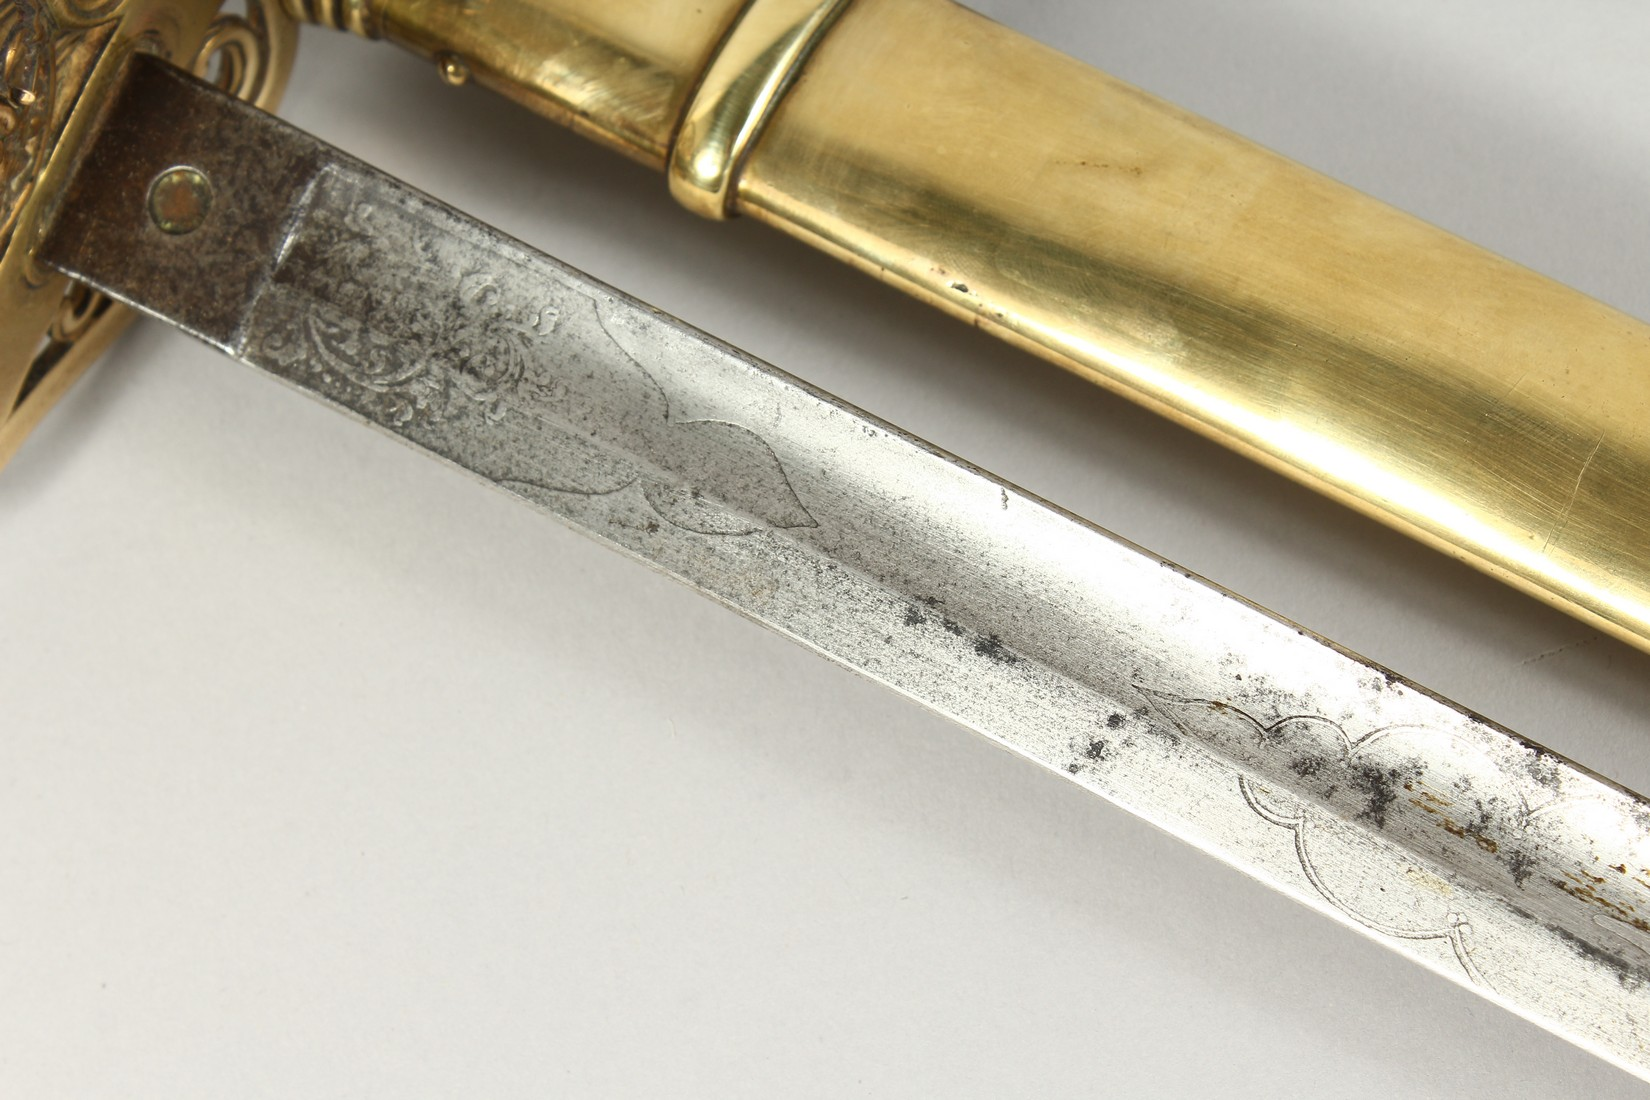 A GOOD VICTORIAN NAVAL SWORD with shagreen handle and engraved blade, V R & Crown inc., brown - Image 13 of 25